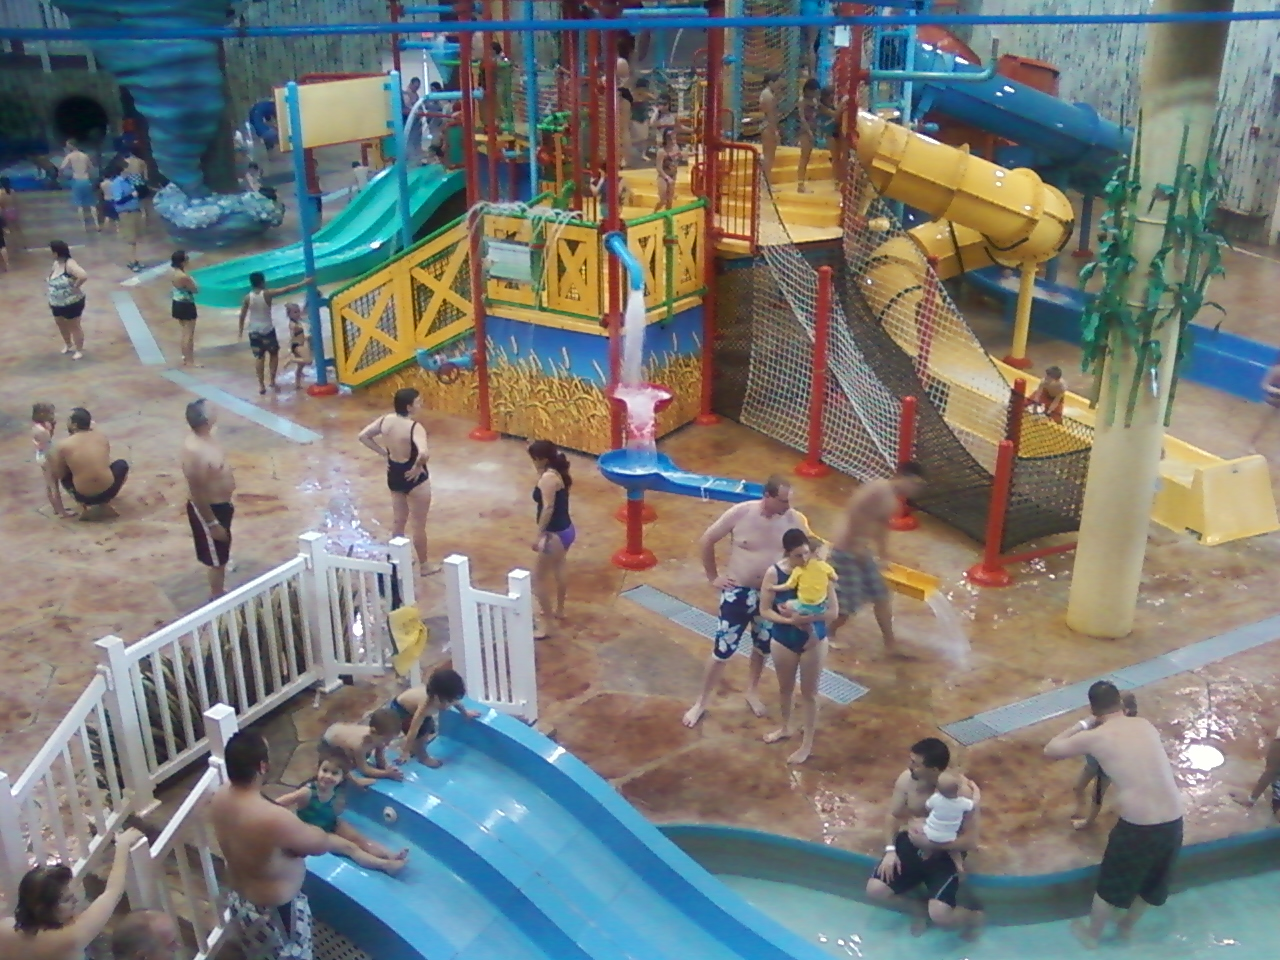 Nov 05,  · The weather was questionable so we decided to look into going to splash universe. Our 3 yr old grandson loved it as it was full of children and lots of fun for him. I would say it's geared towards families with young children.3/5().